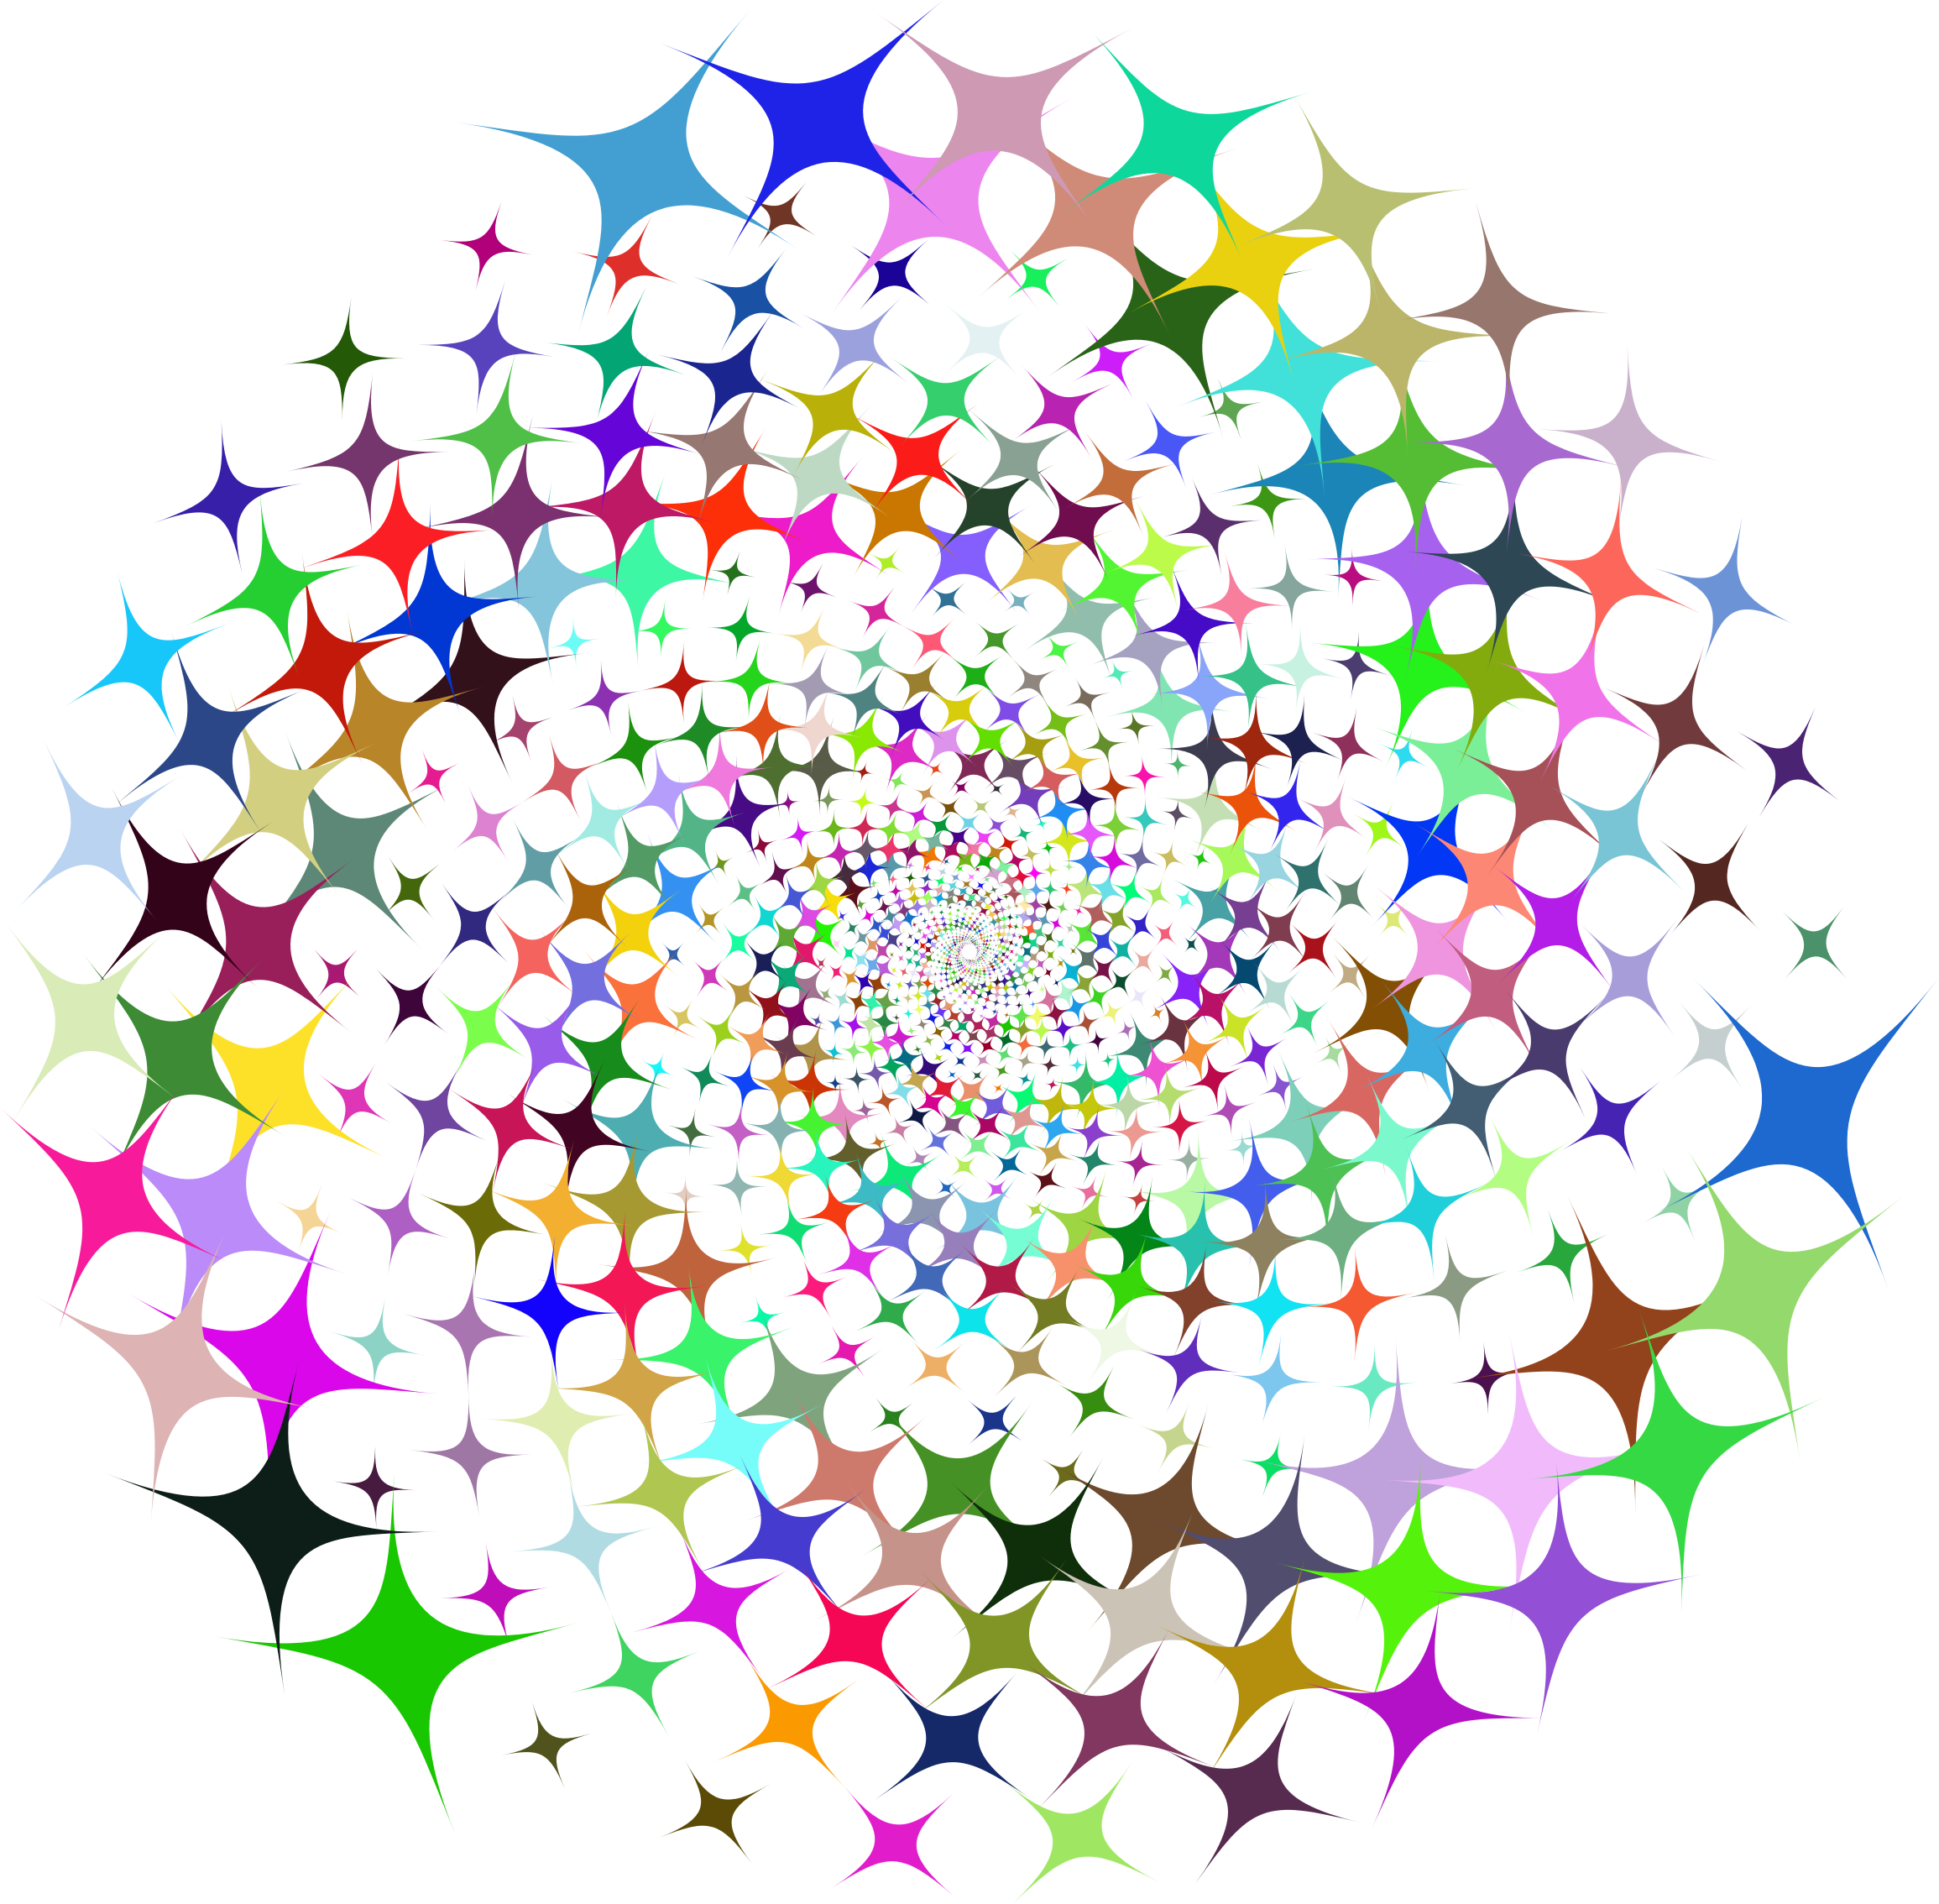 Clipart prismatic starburst vortex